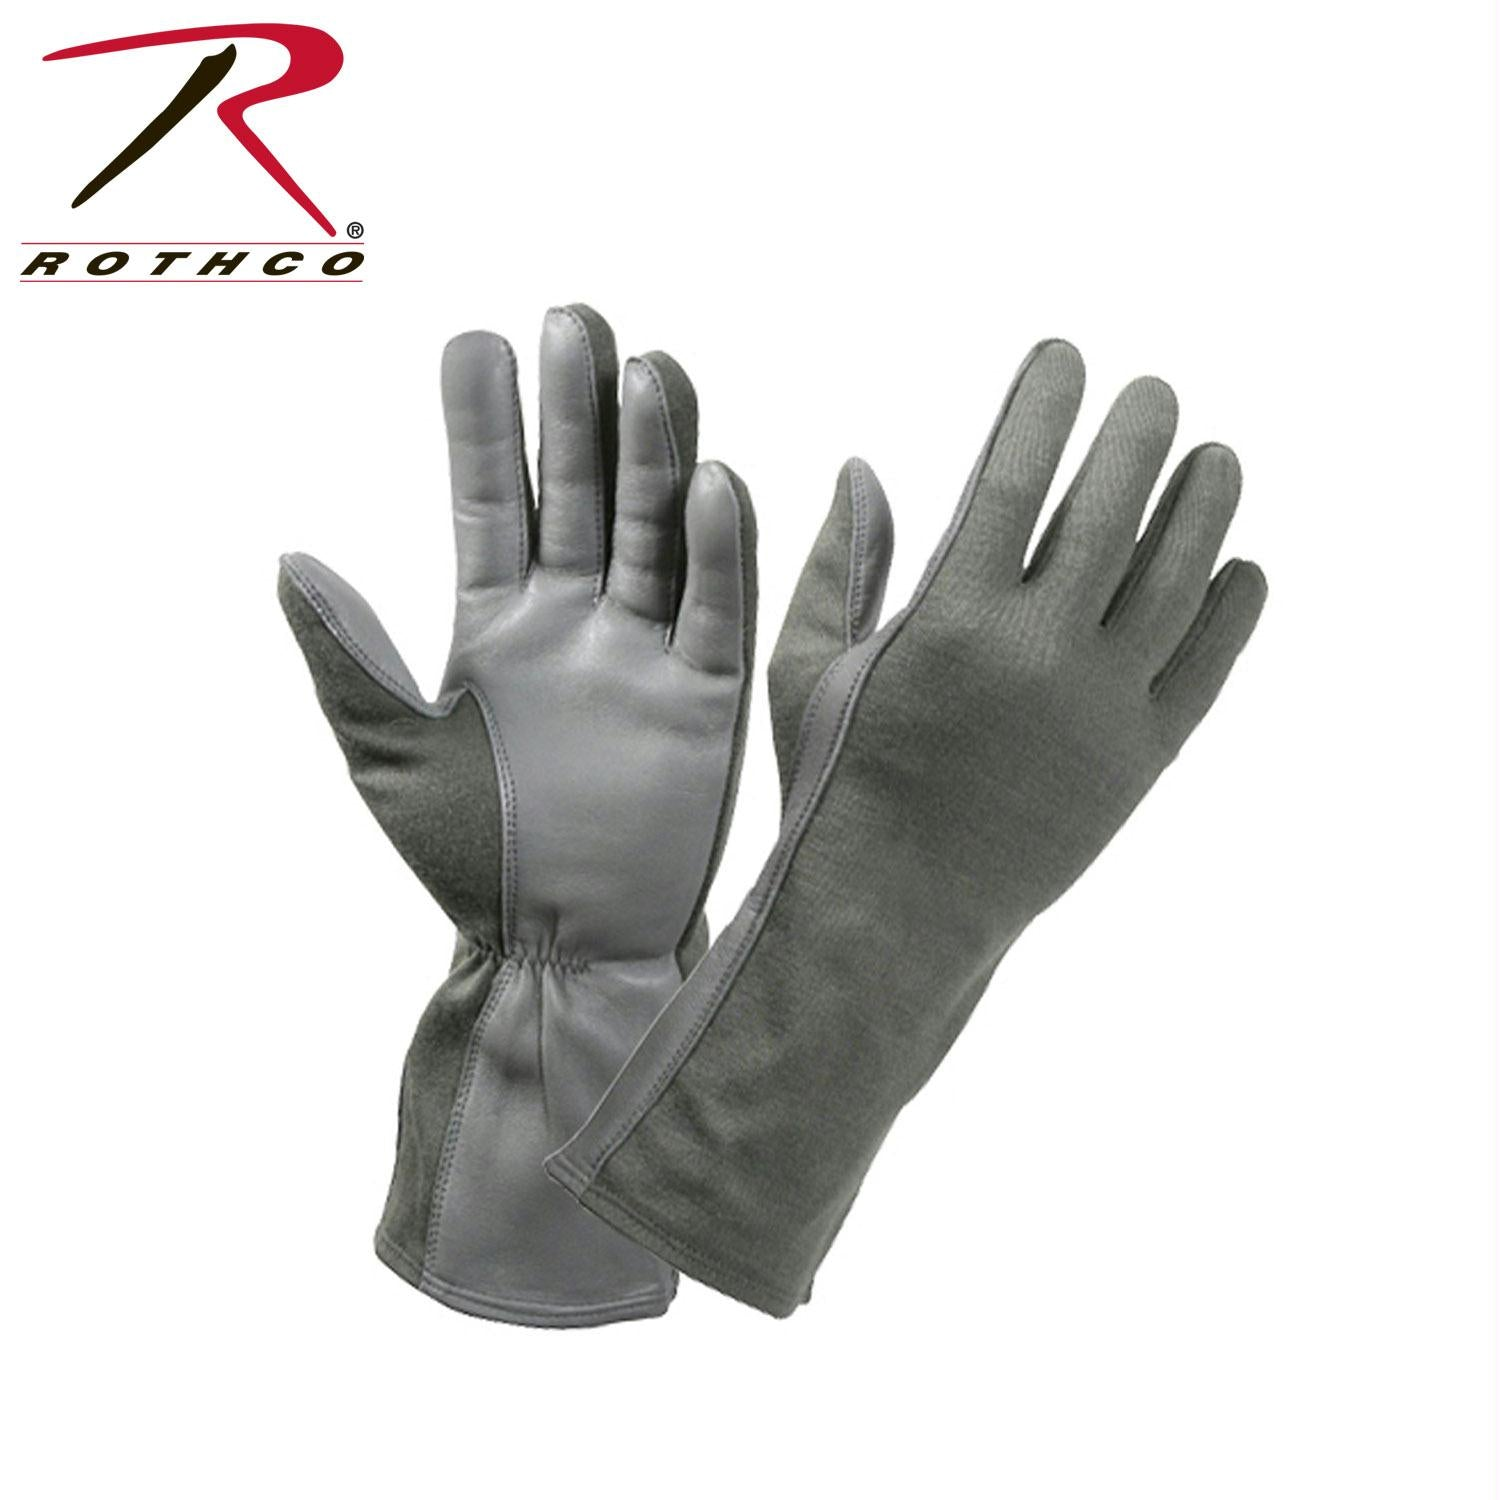 Rothco G.I. Type Flame & Heat Resistant Flight Gloves - Foliage Green / 9